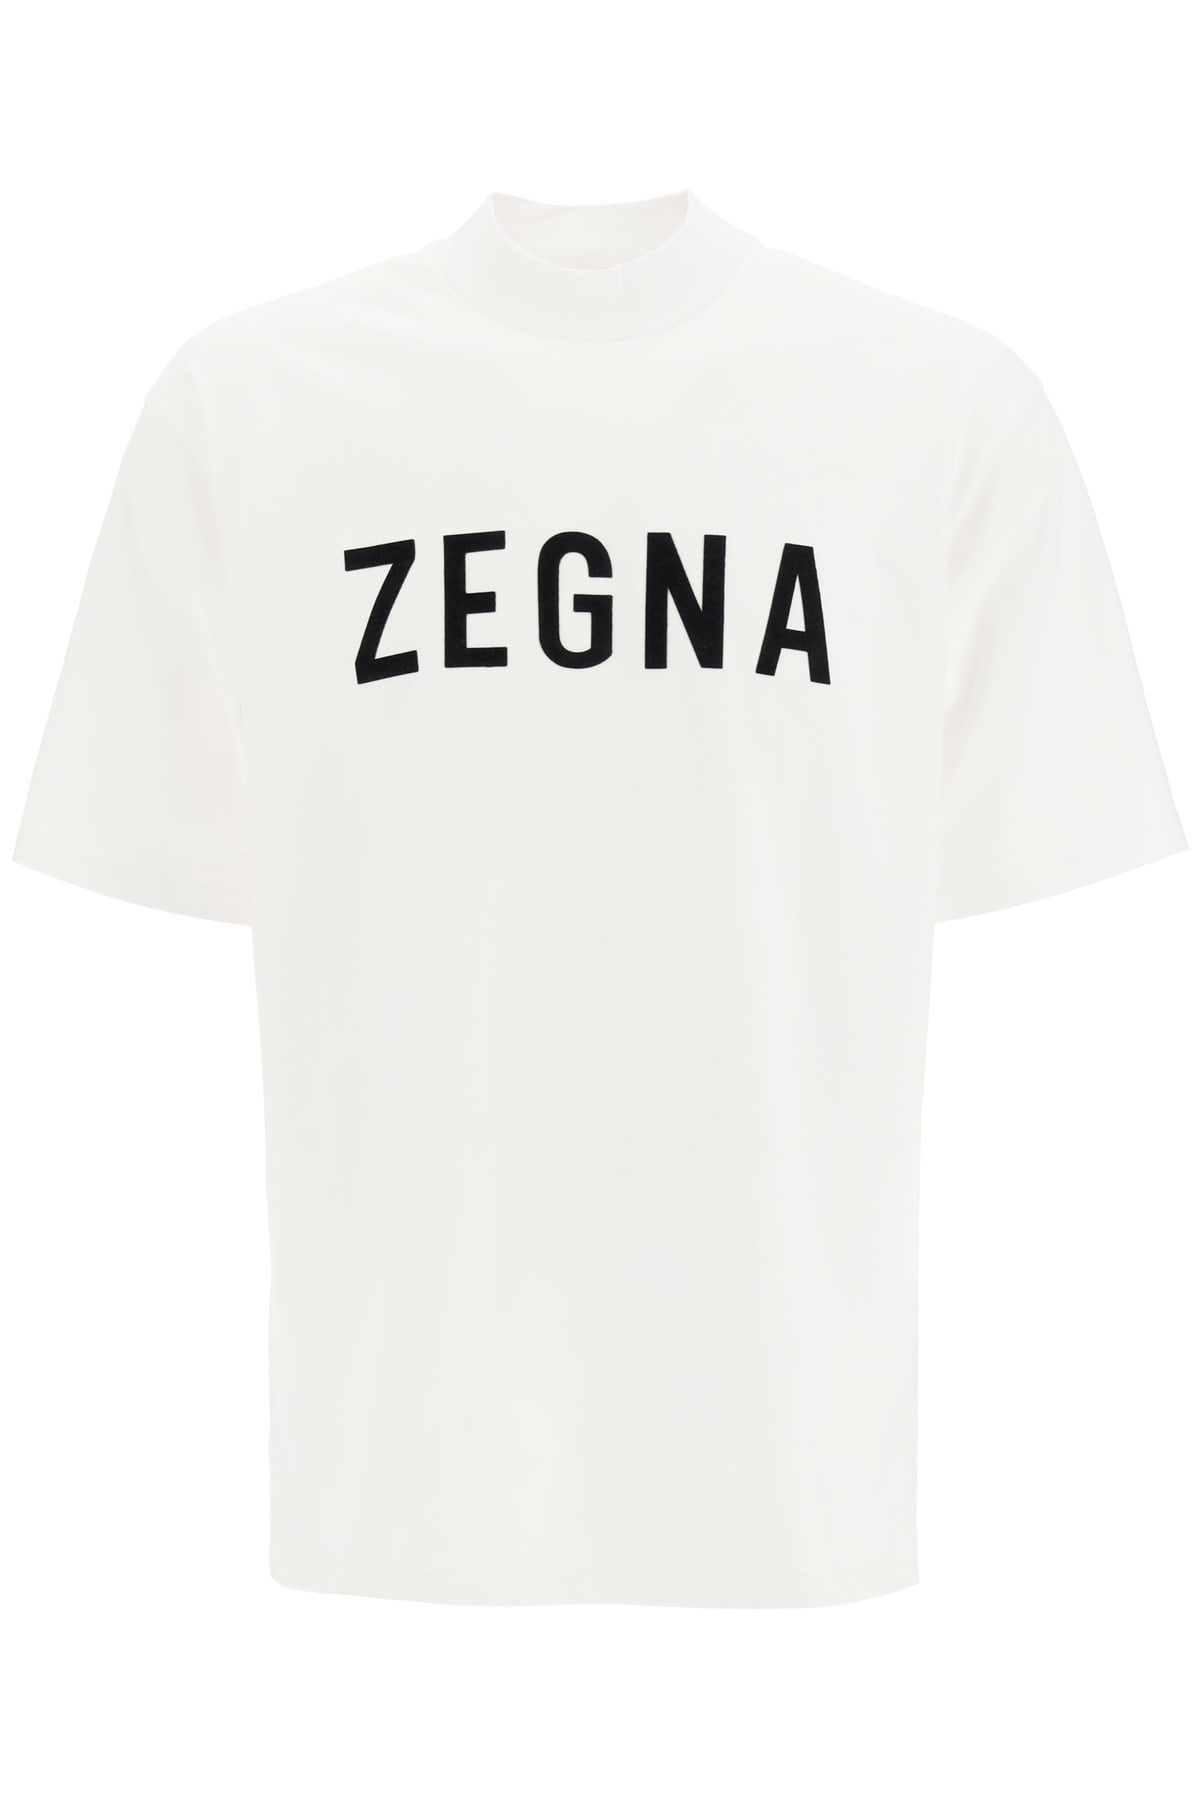 Fearofgodzegna ZEGNA X FEAR OF GOD T-SHIRT FLOCKED LOGO